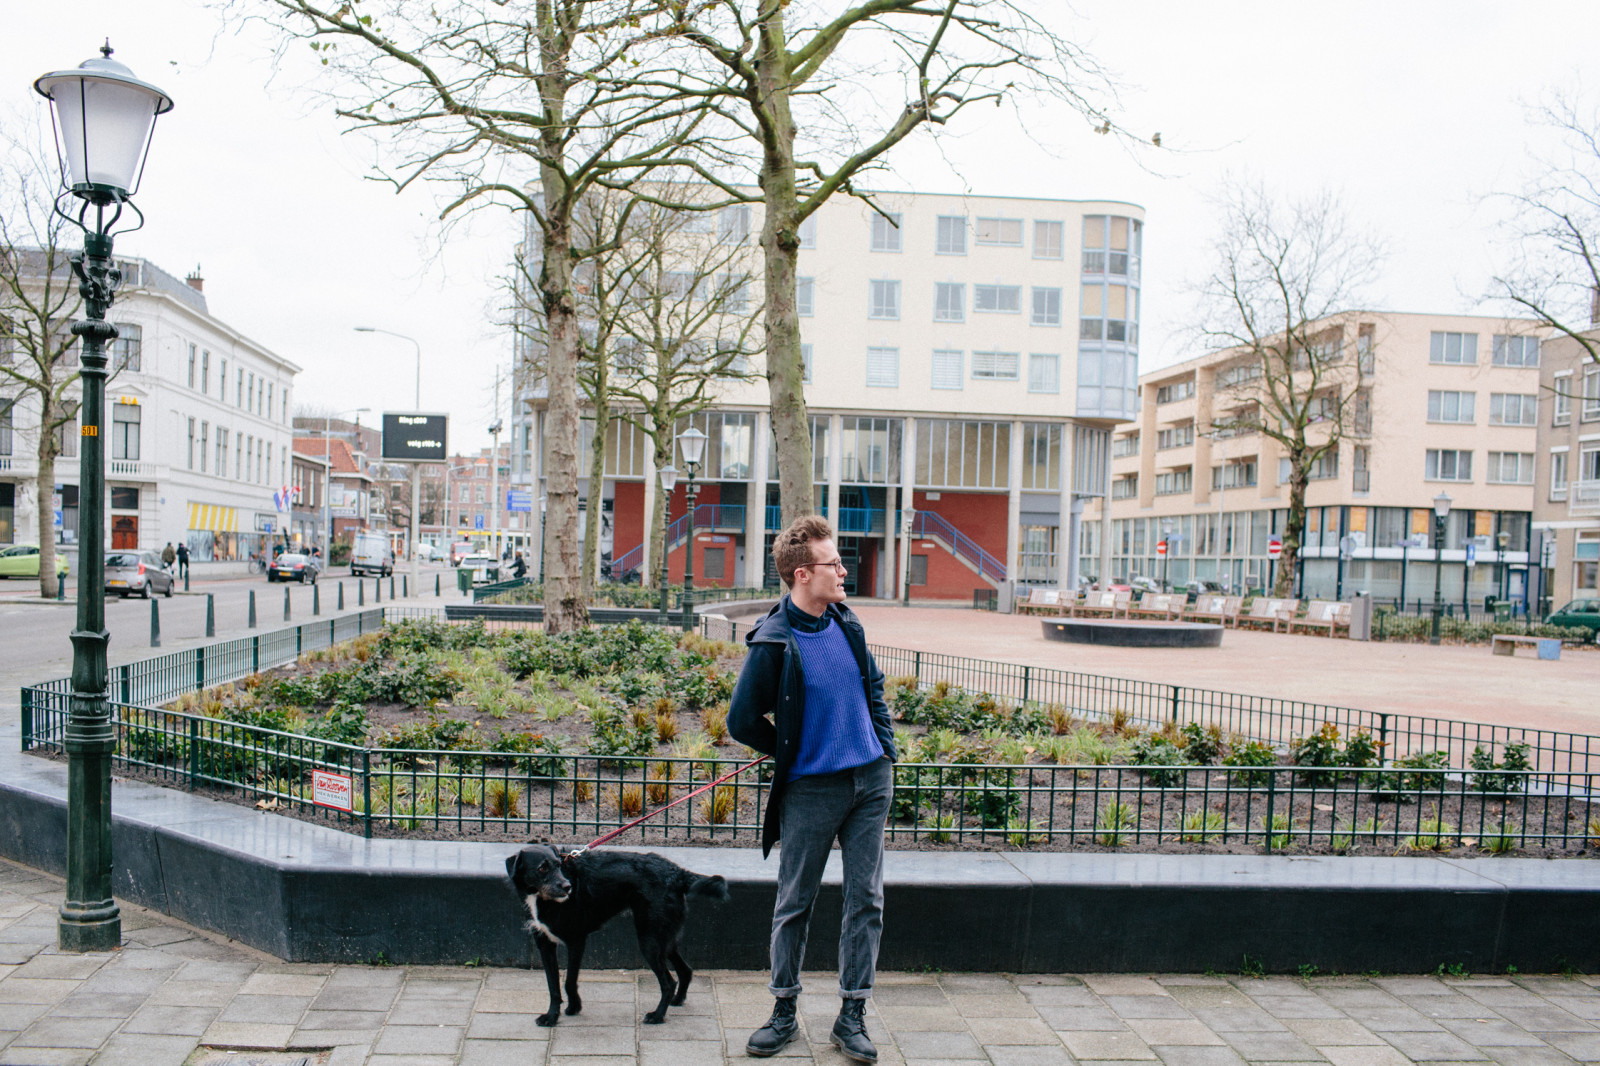 MYKITA FIRST's illustrator Jordy van den Nieuwendijk walking his dog through The Hague.